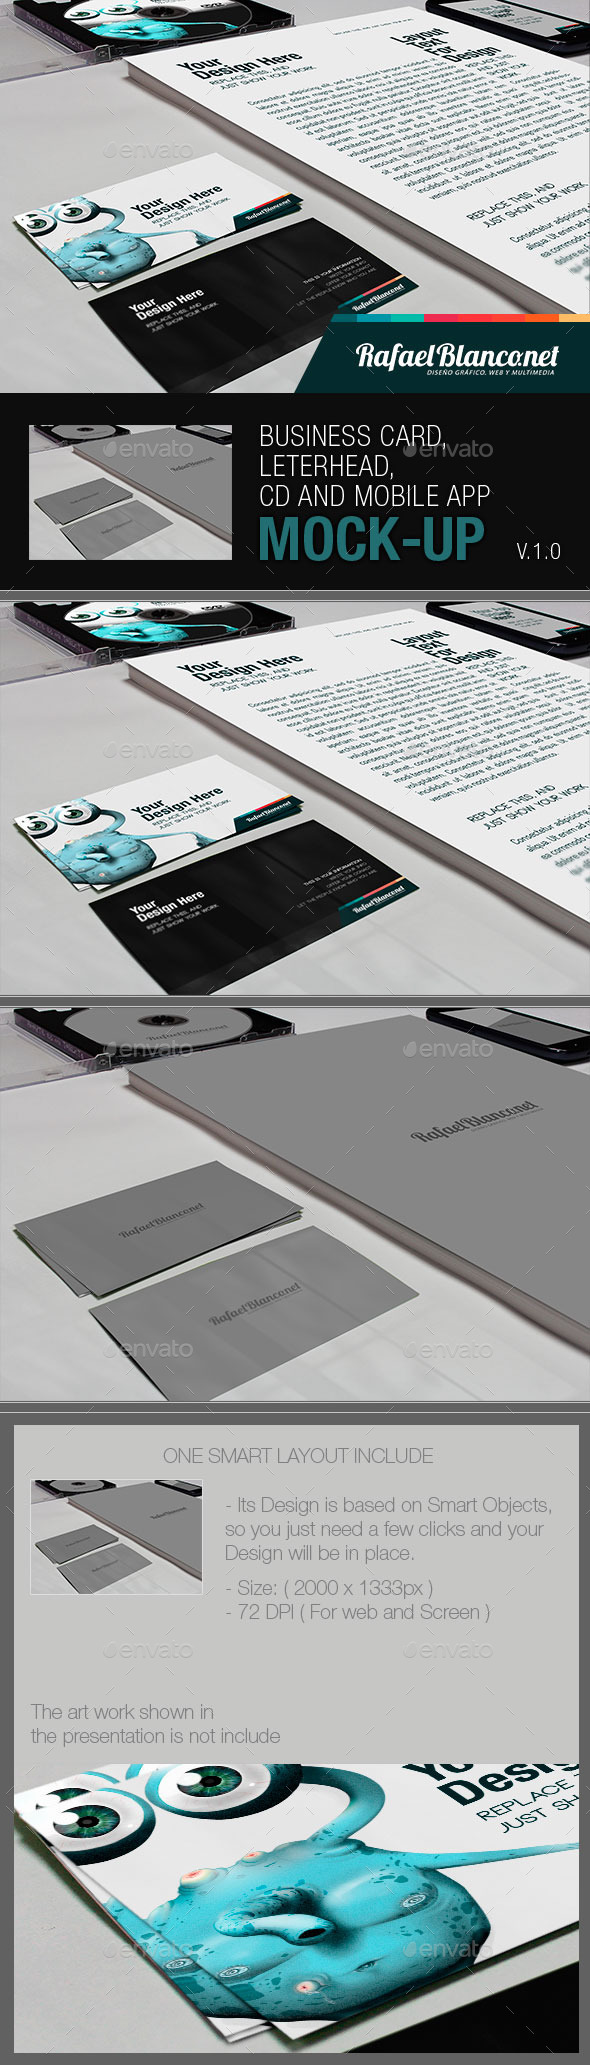 Business Card, Letterhead CD and App Mock-Up - Miscellaneous Displays